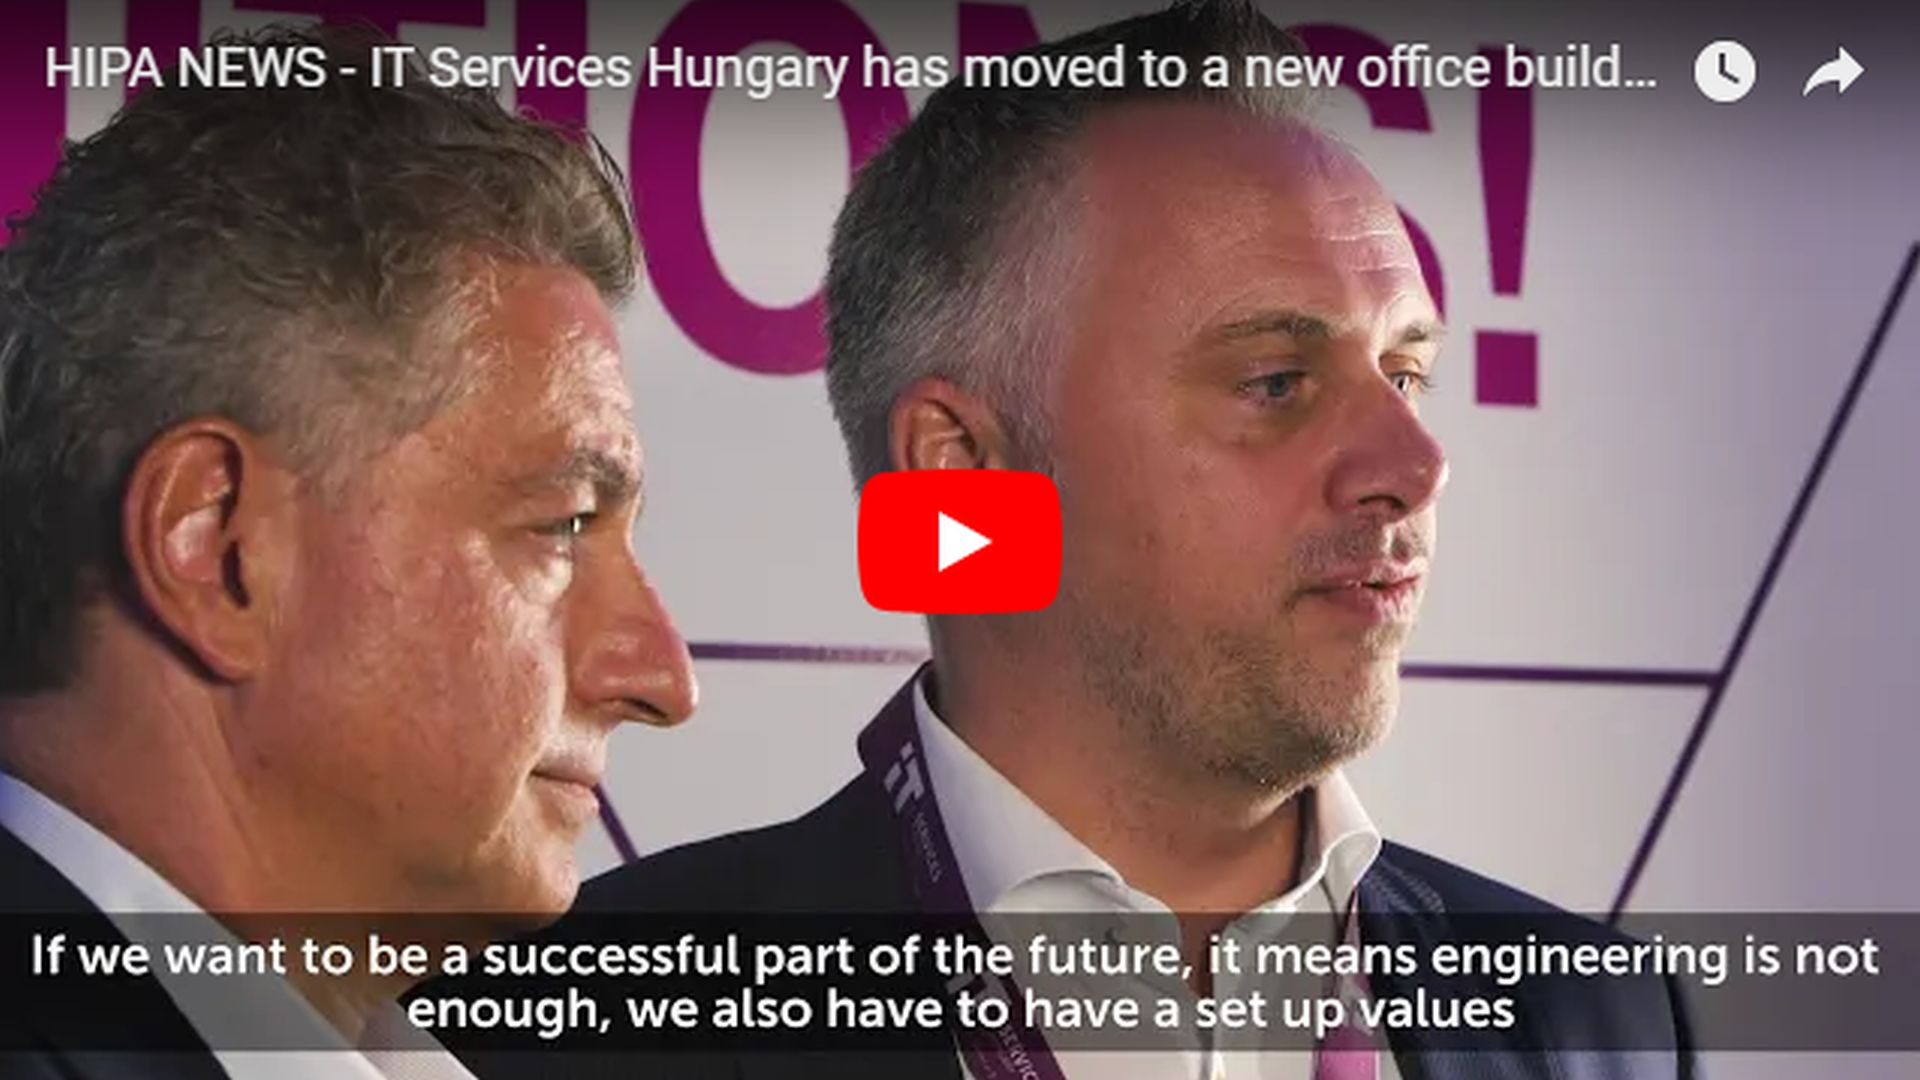 IT Services Hungary has moved to a new office building in Budapest - VIDEO REPORT